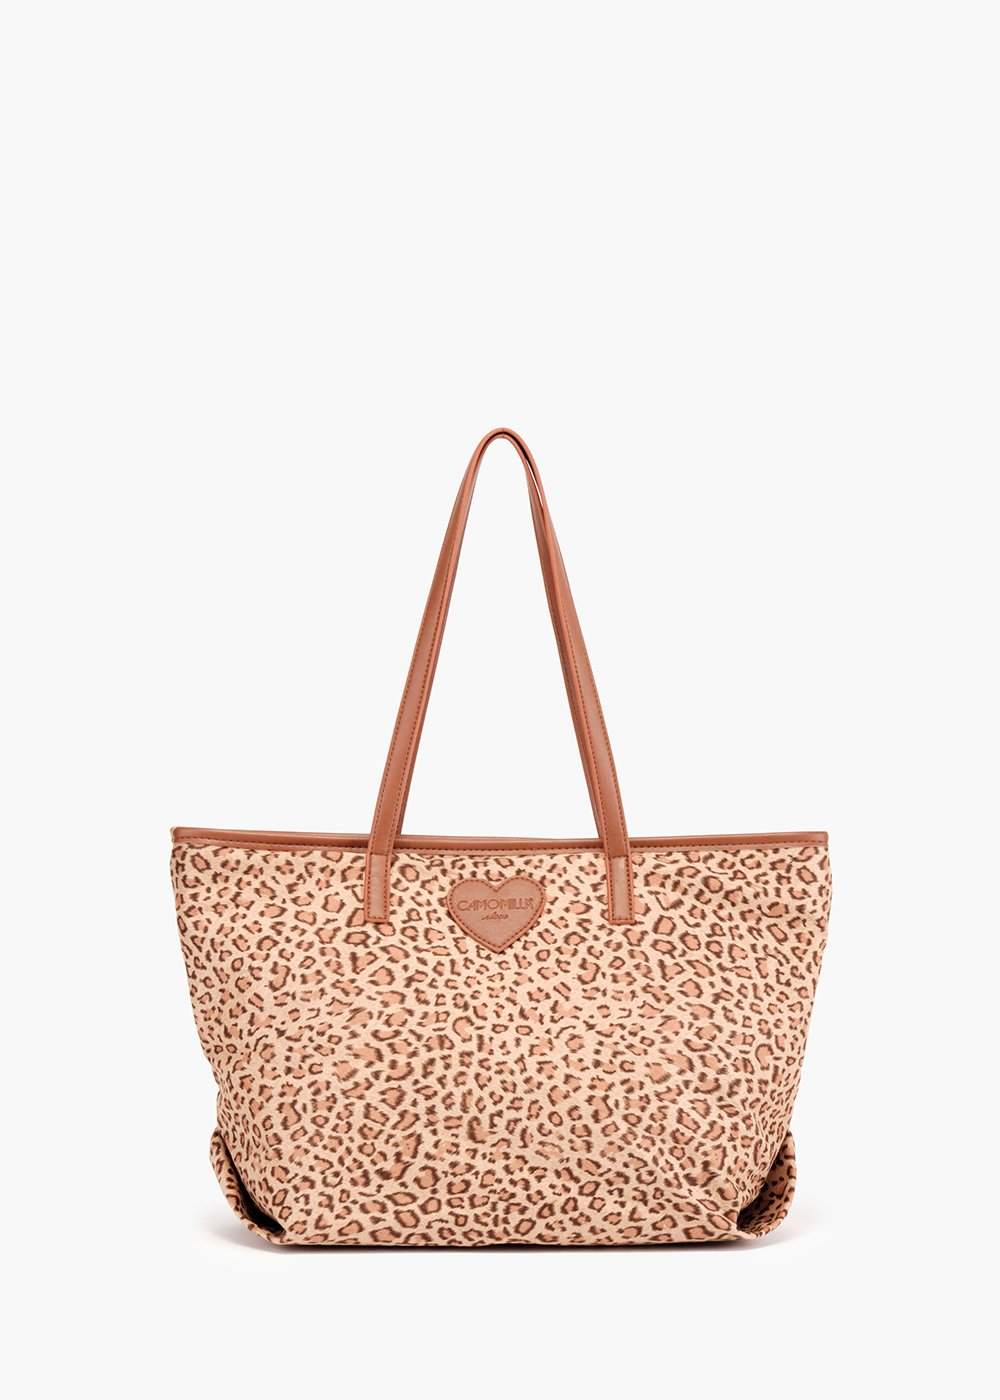 Bodel shopping bag with animal print and eco leather details - Suolo / Mais - Woman